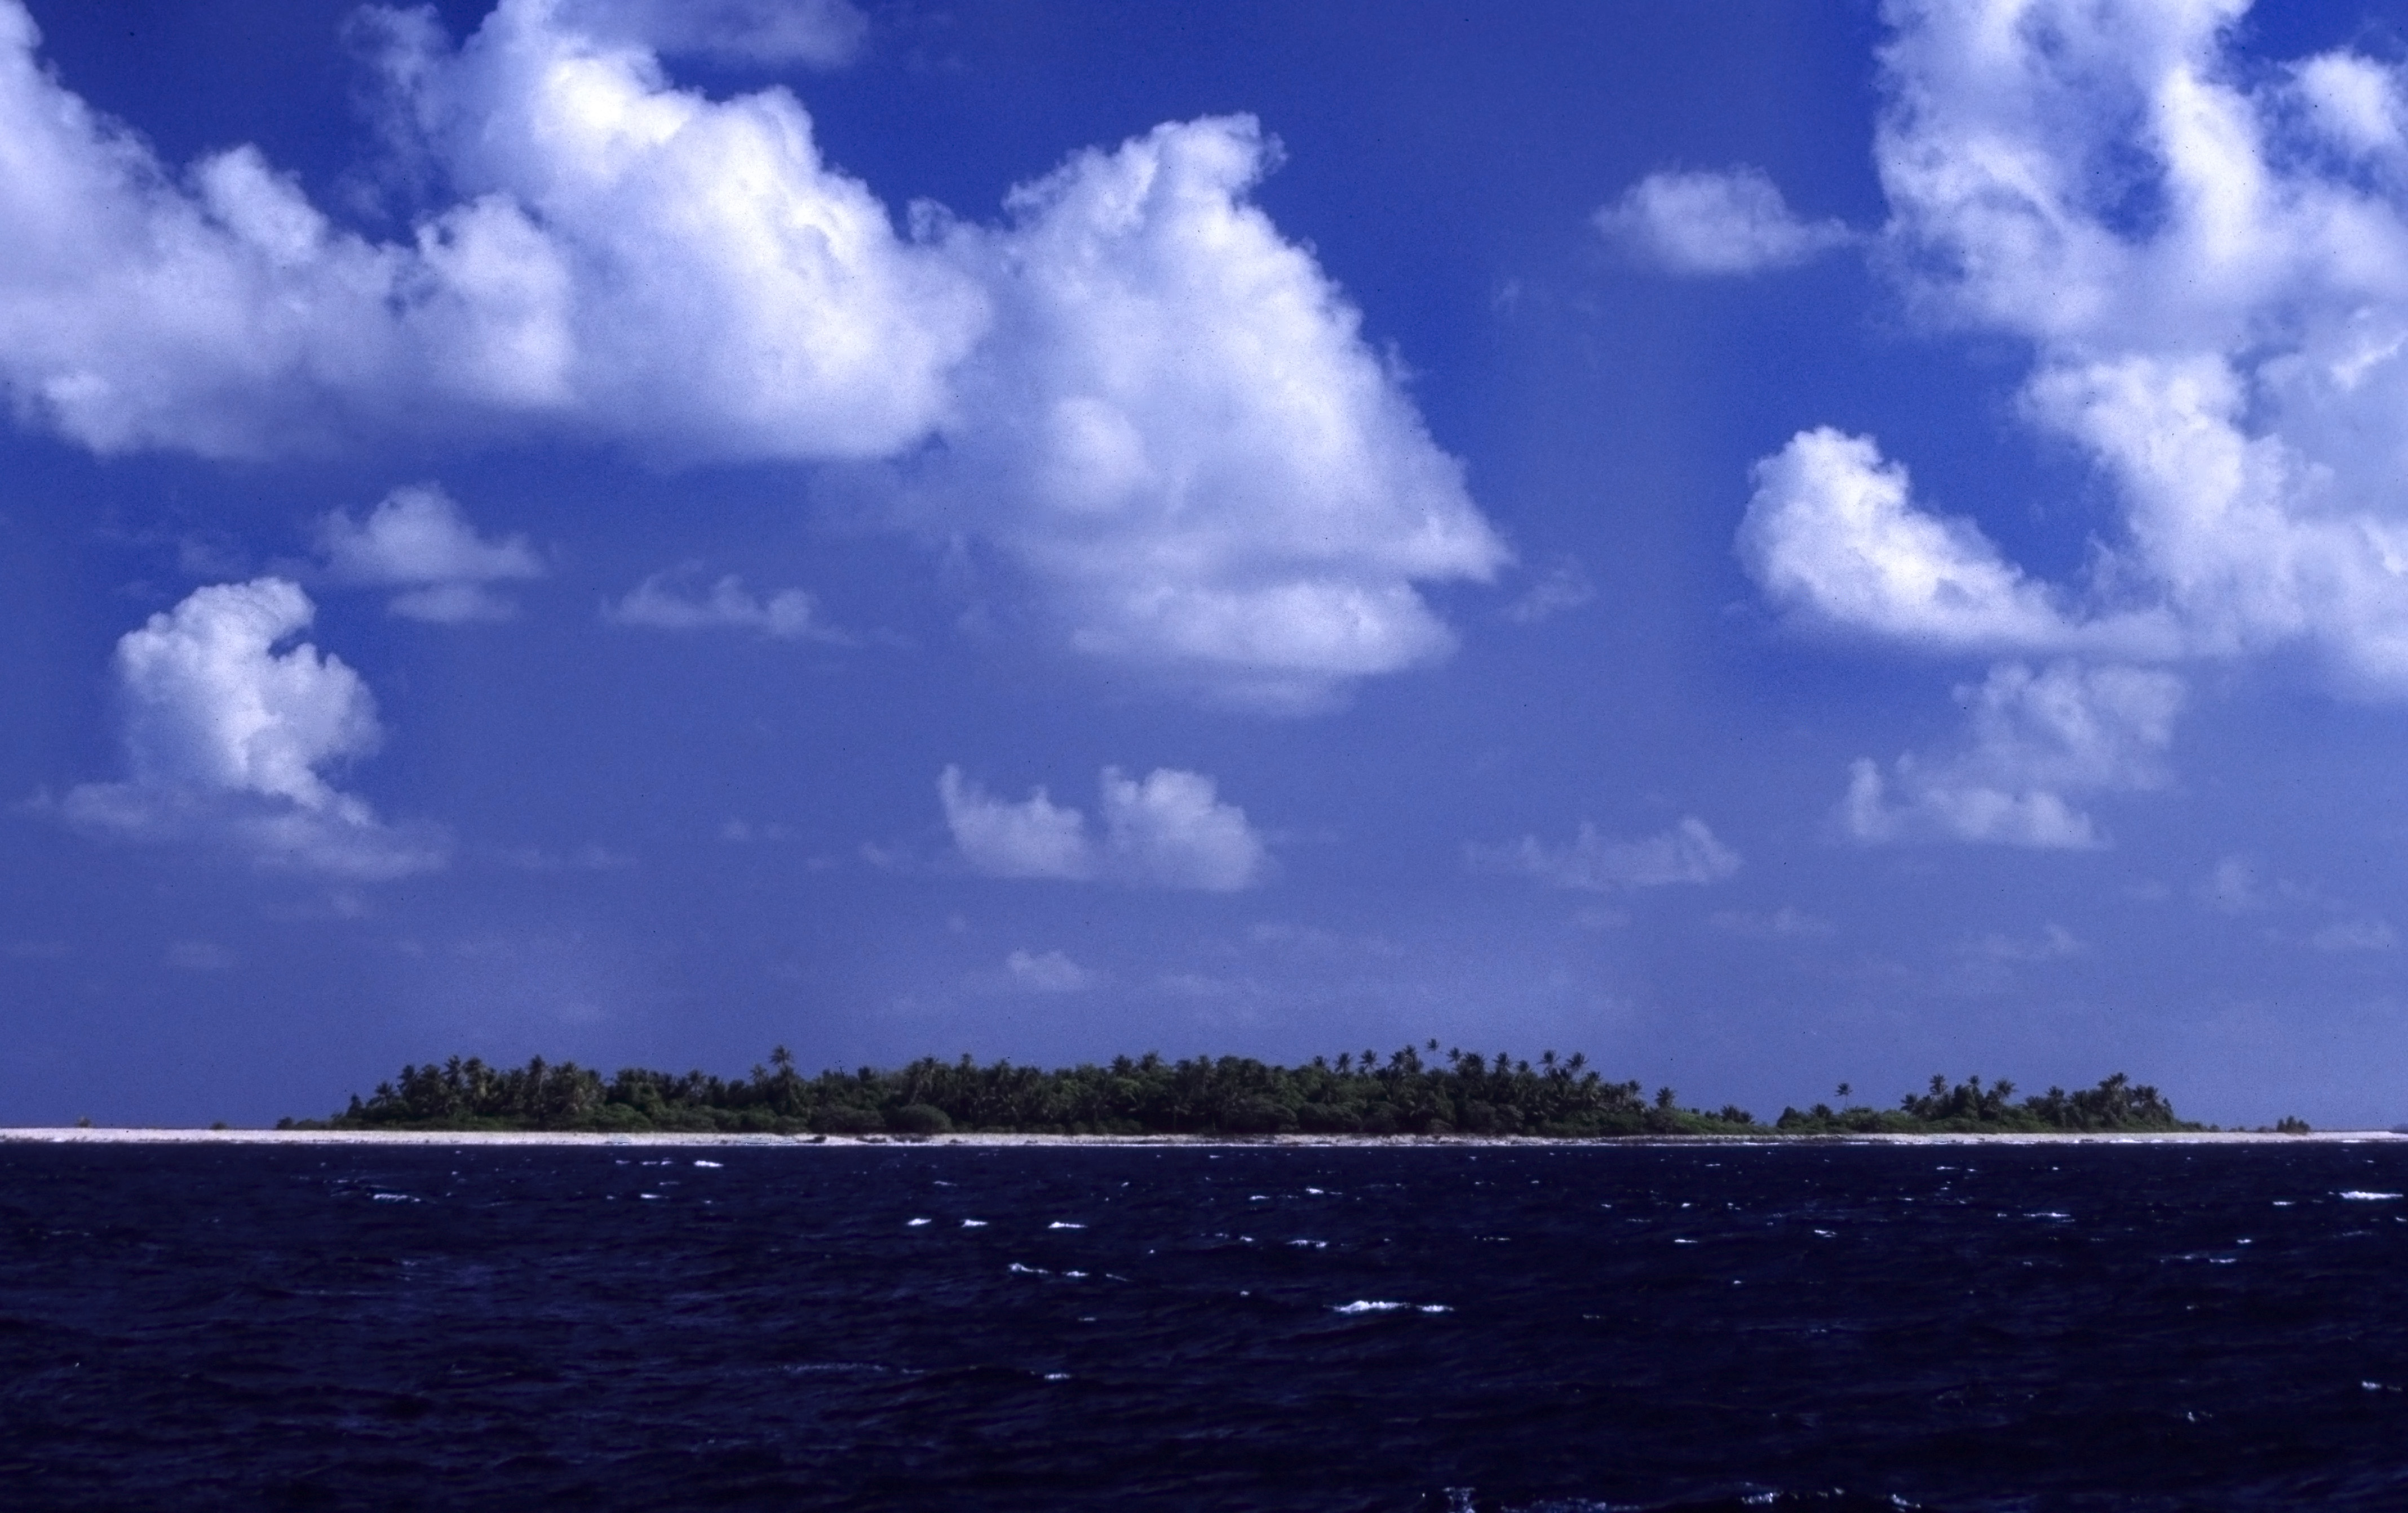 Coconut trees are the highest thing on the low-lying islands of Tuvalu and provide valuable food and drink for people. Photo by Anjadora / Wikimedia http://creativecommons.org/licenses/by/2.0/deed.en